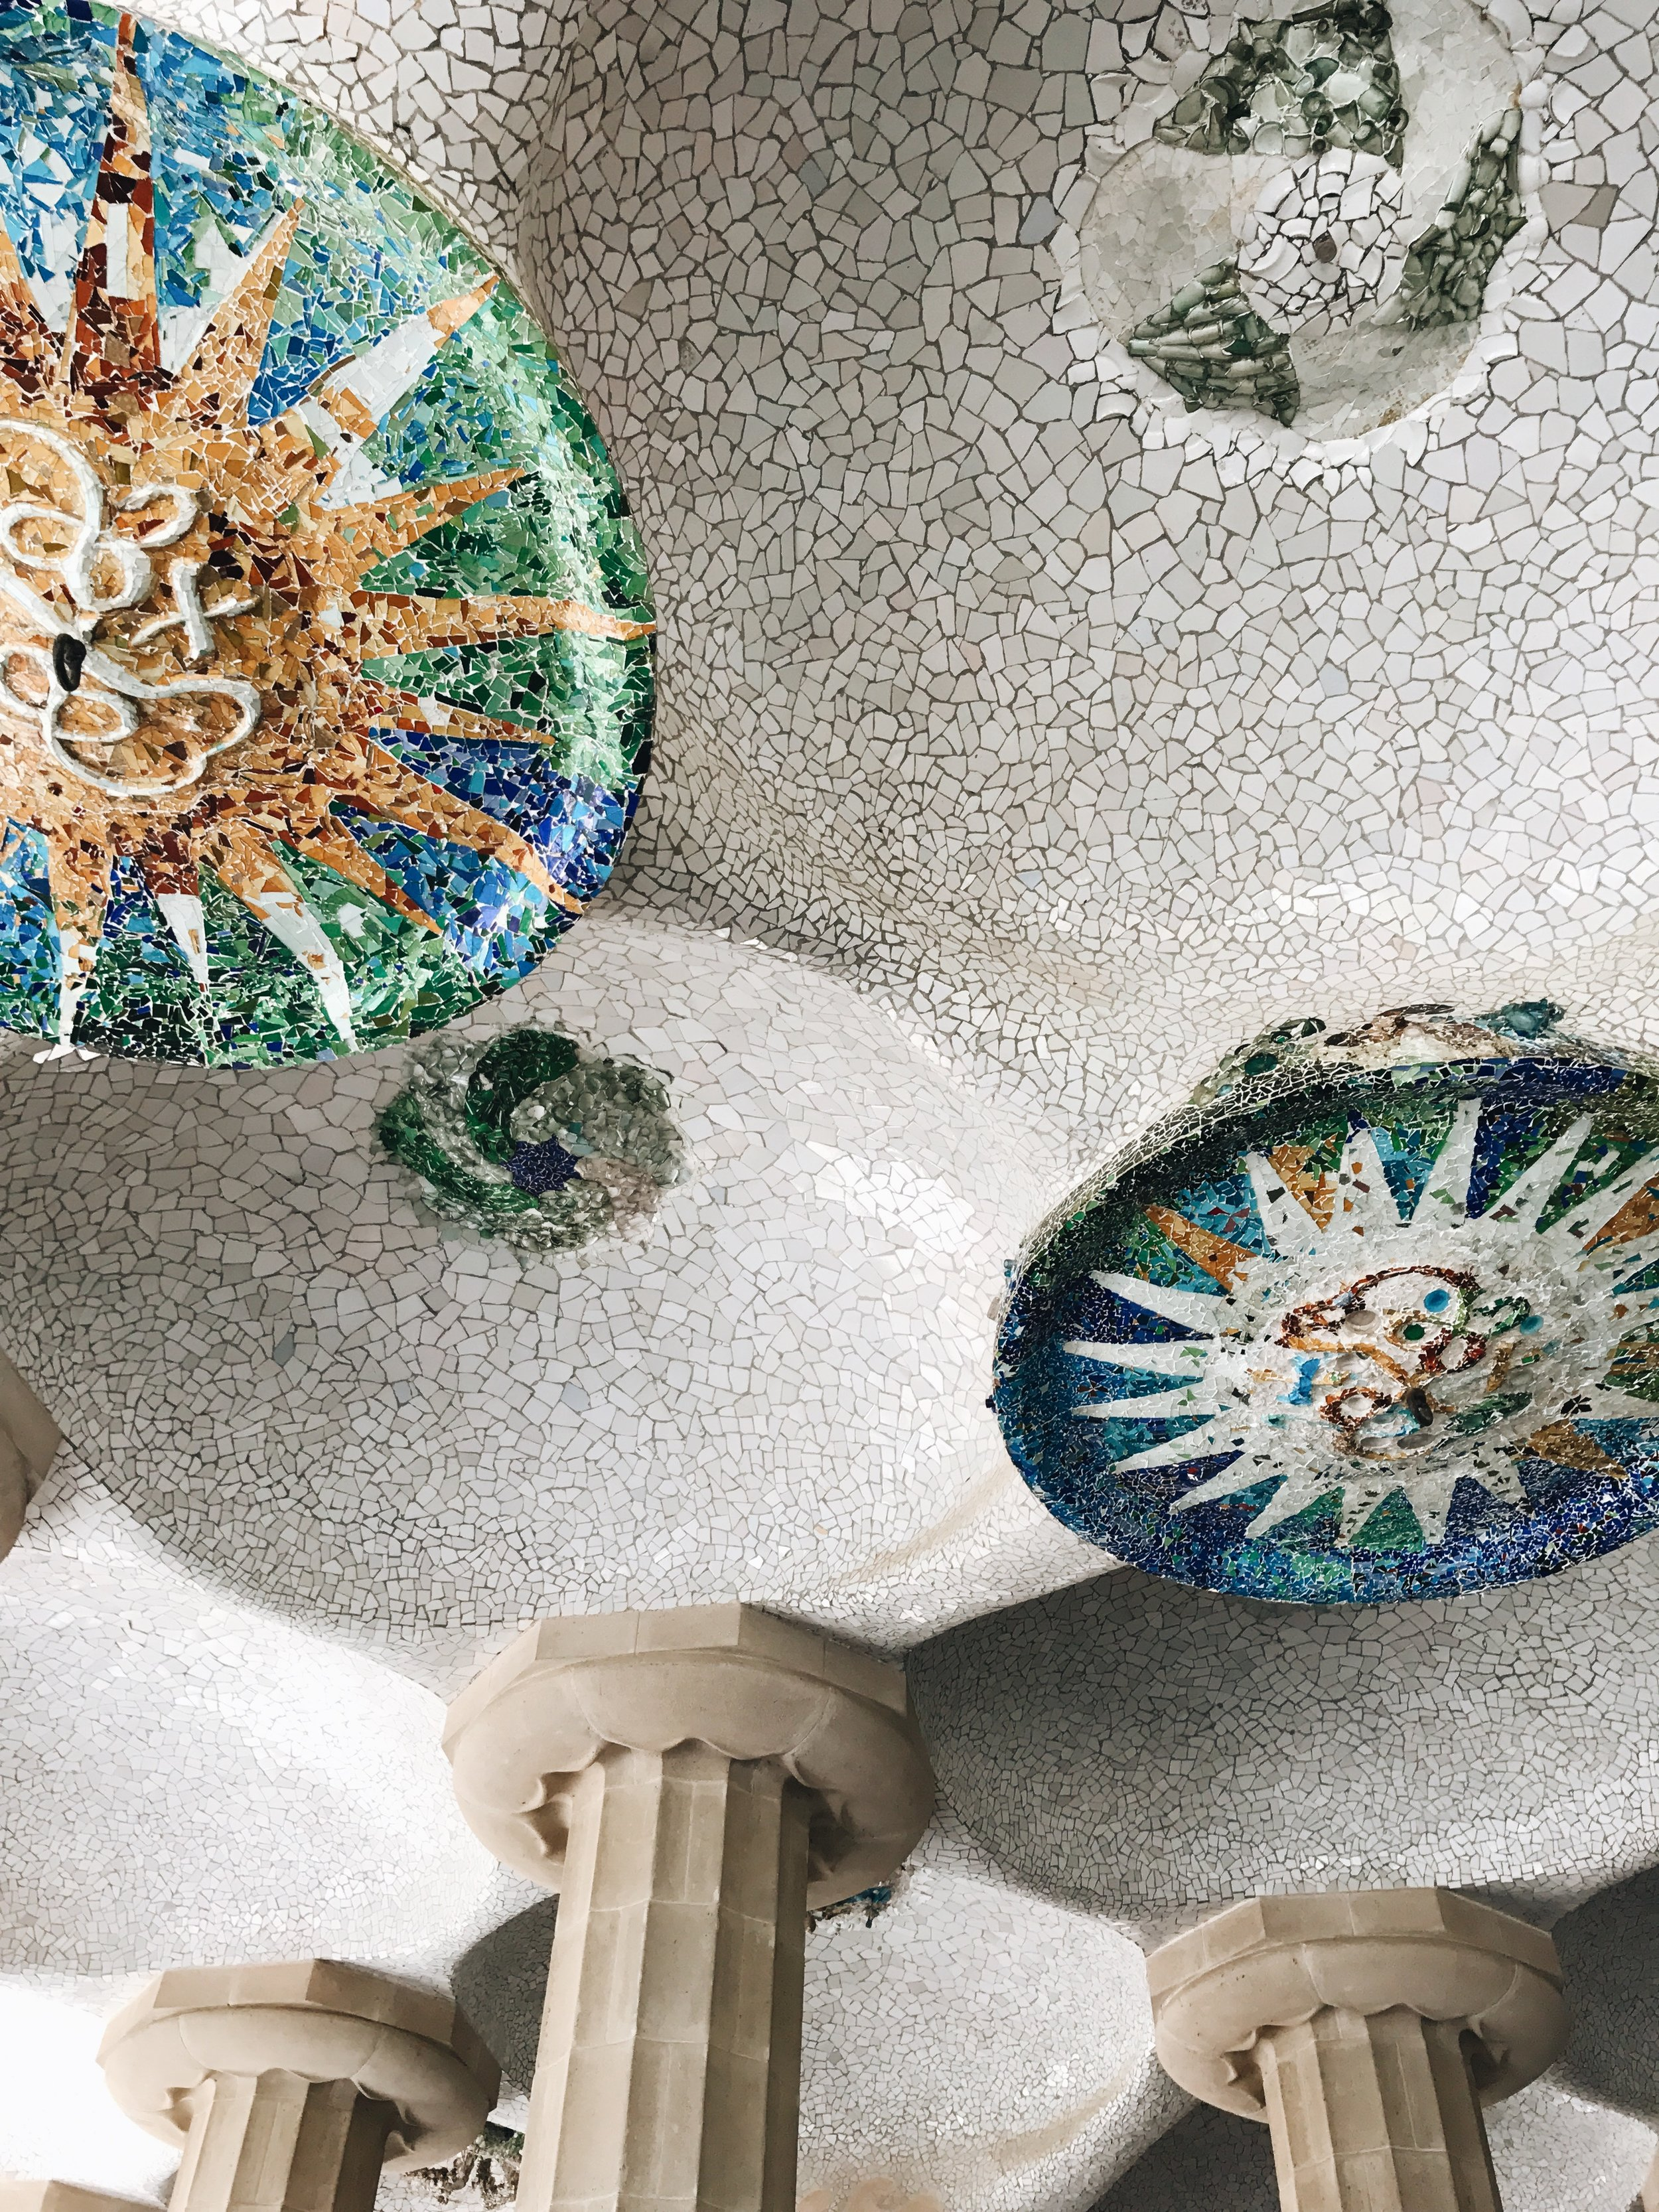 To do in Barcelona: Park Guell, Everyday Pursuits 48 hours in Barcelona